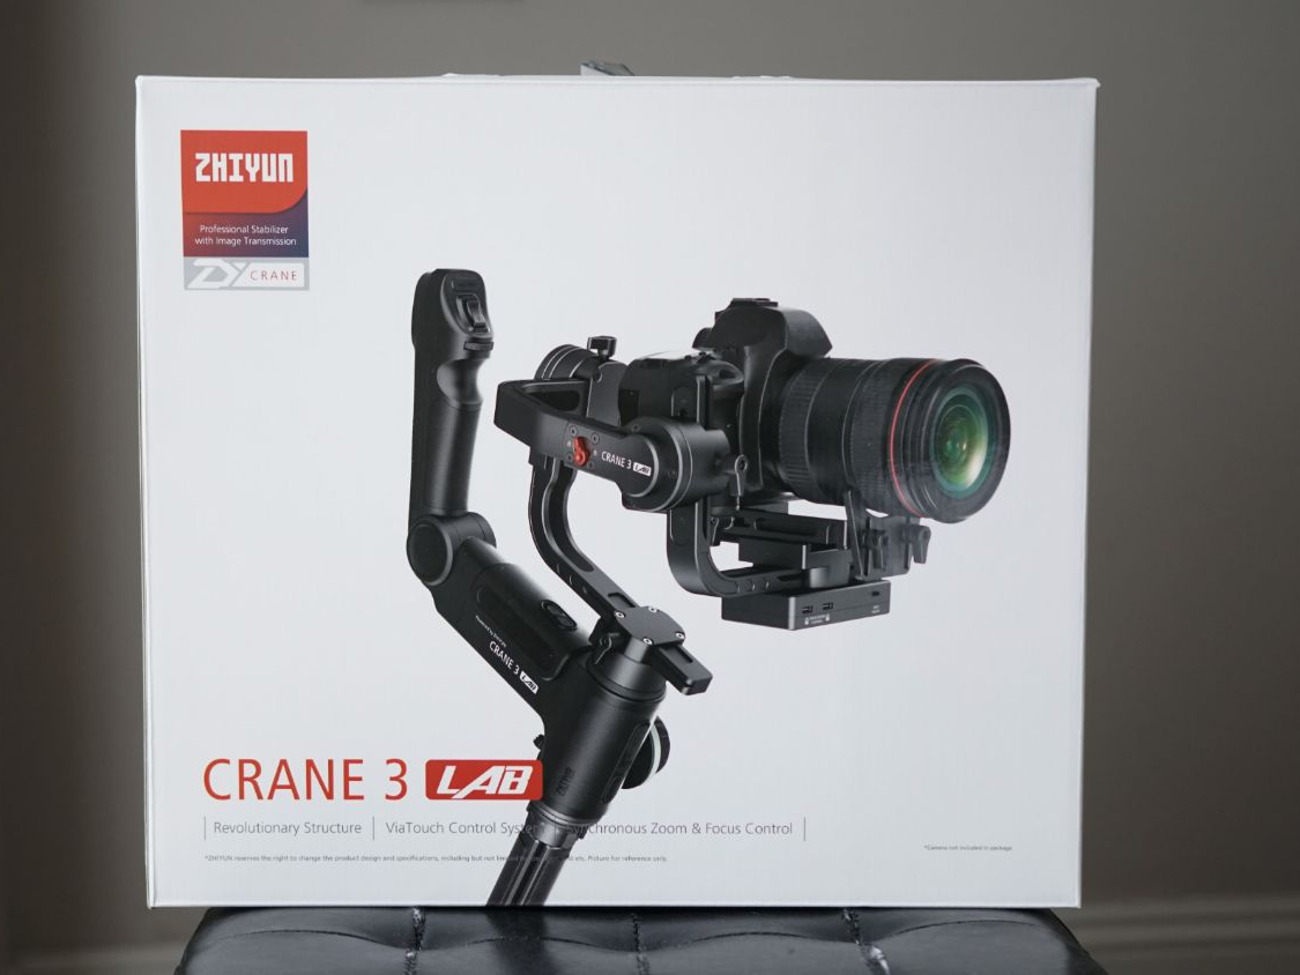 Zhiyun Crane 3 Lab Gimbal handheld for Sony FS5, Canon DX1, Canon C200,  Gh5, a7s II and more (DJI Ronin S big brother)